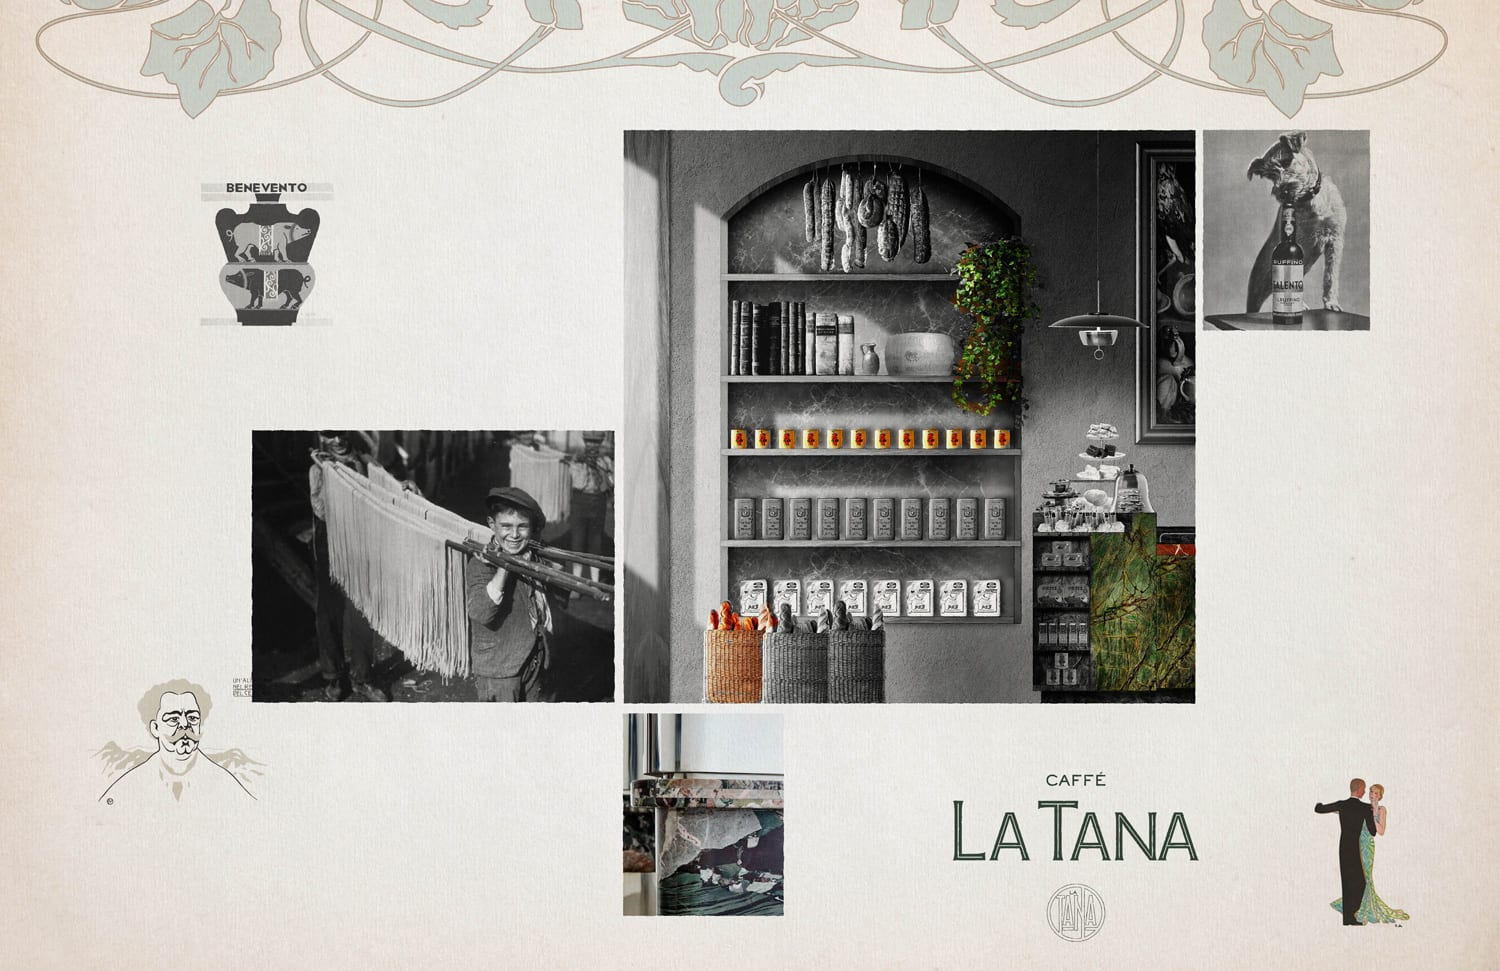 La Tana Café in Vancouver, Canada by Ste. Marie Art and Design | Yellowtrace